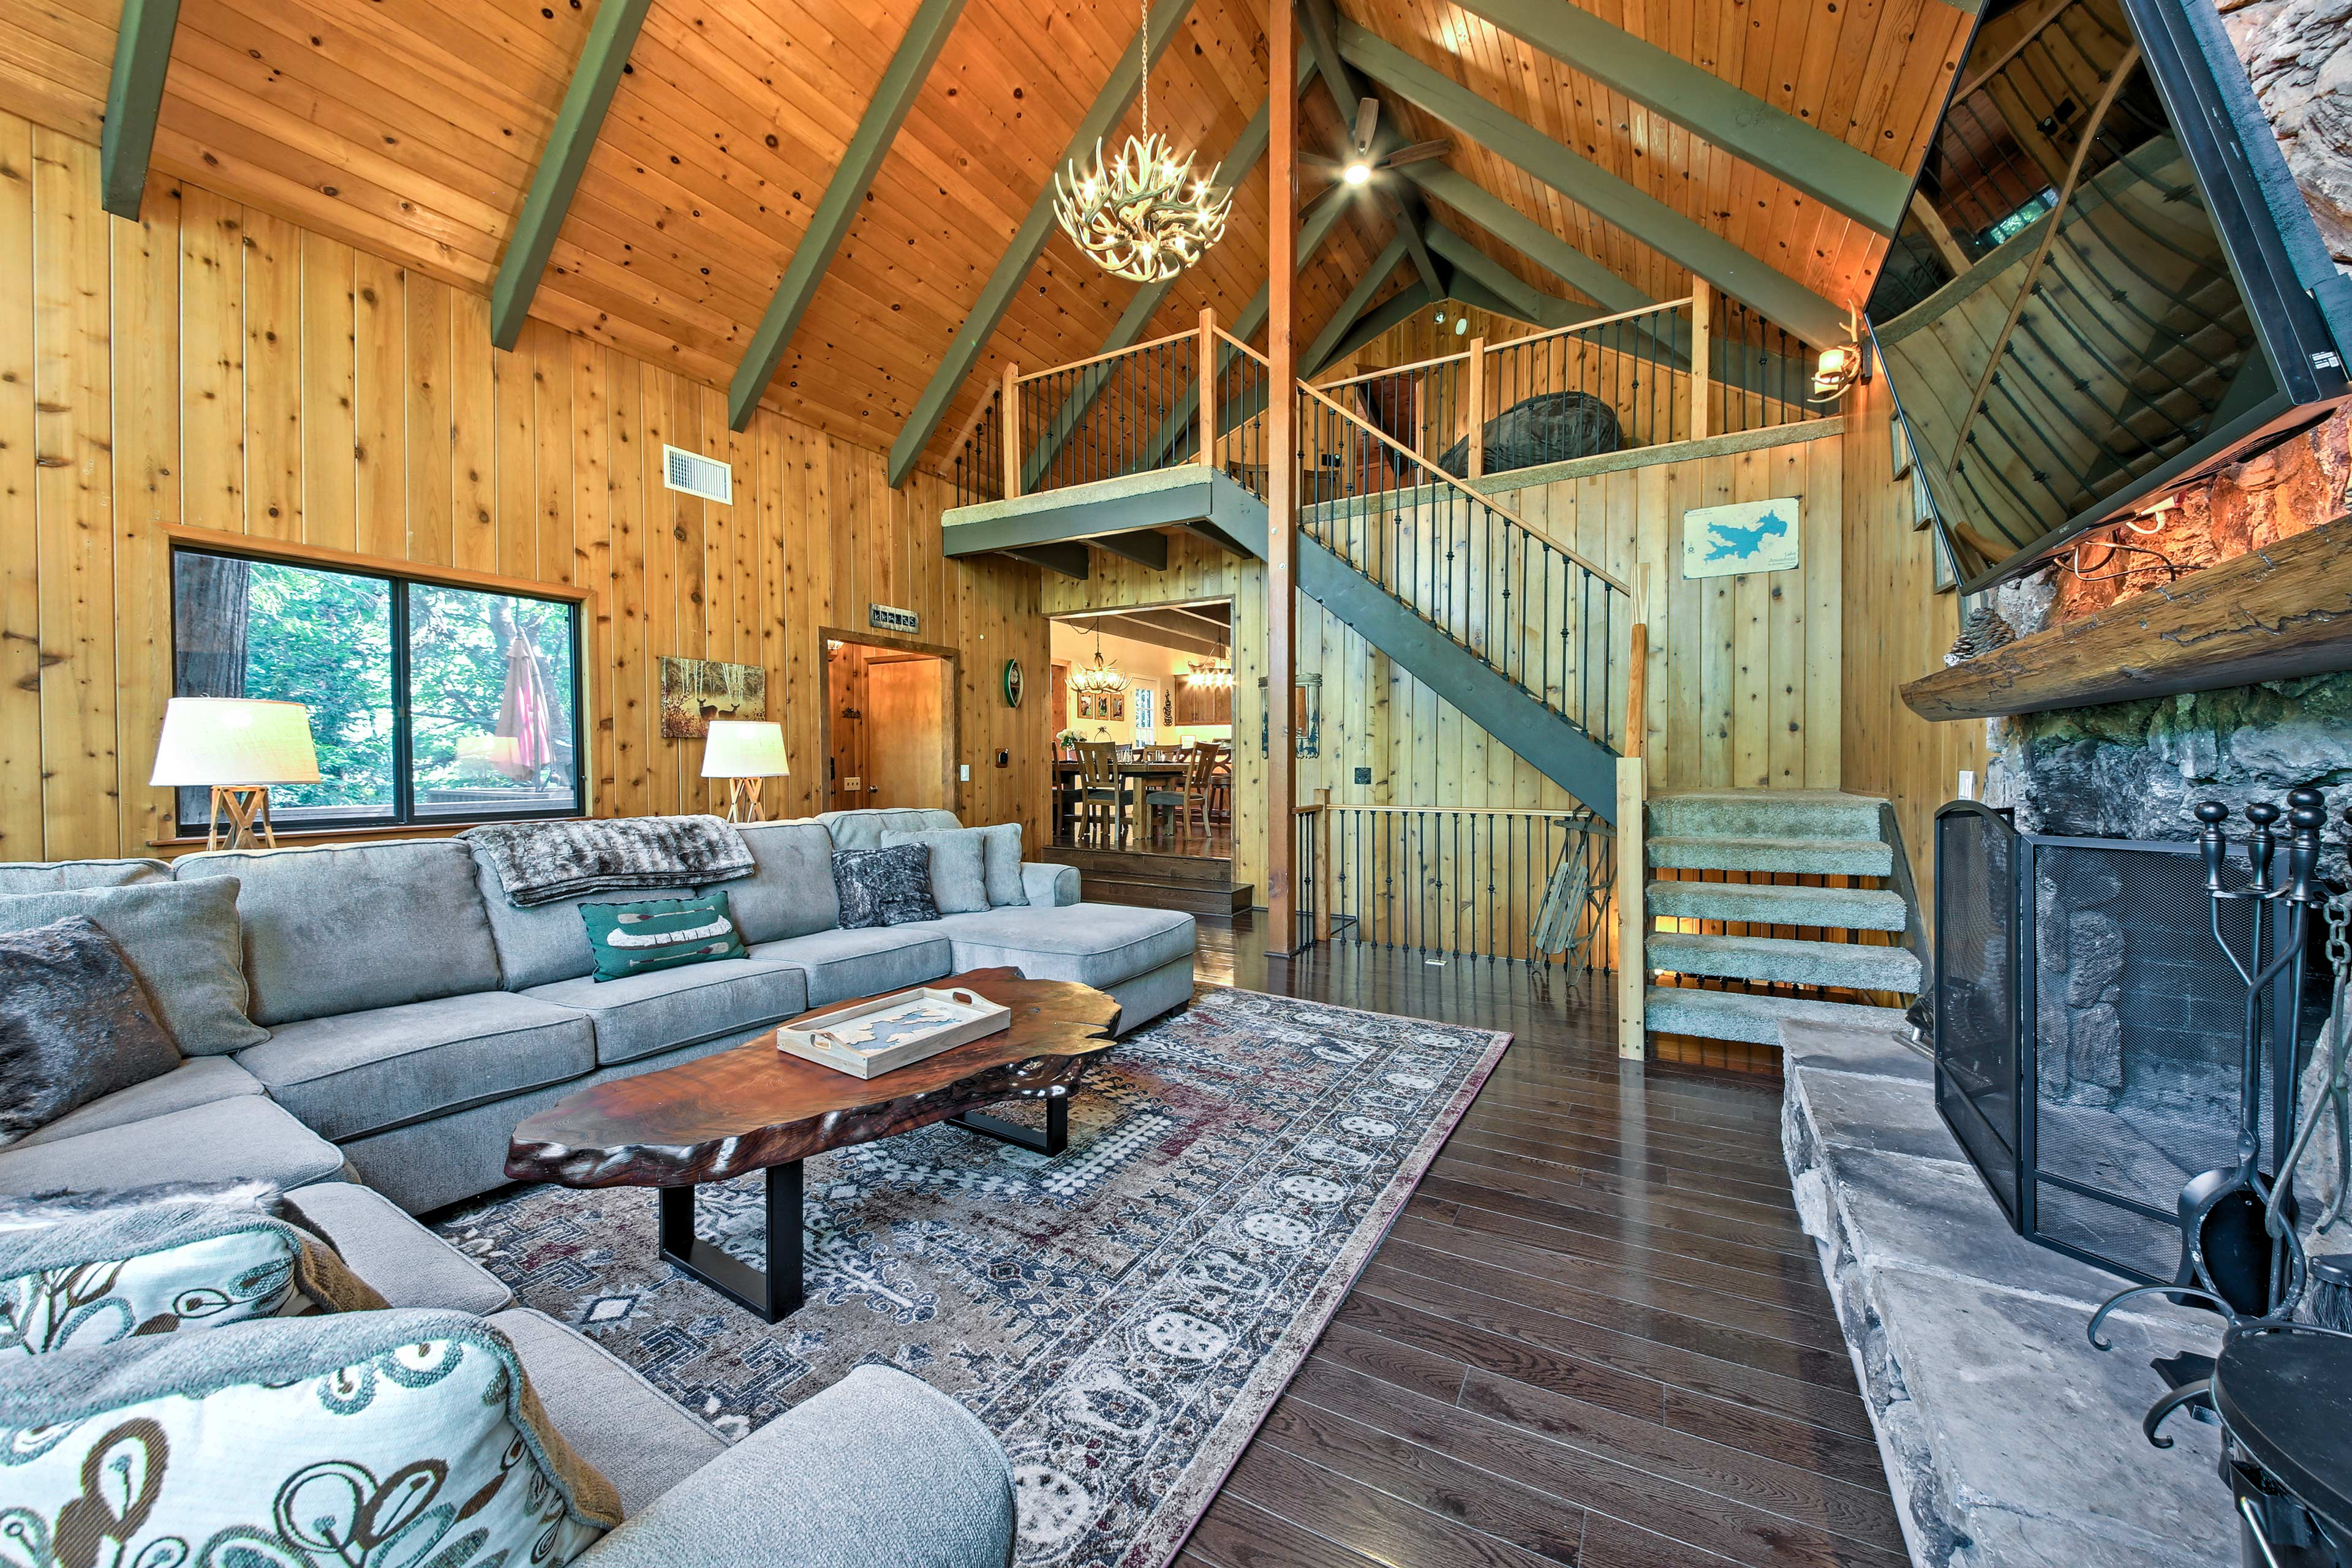 Vaulted ceilings, hardwood floors and rustic cabin decor detail the interior.